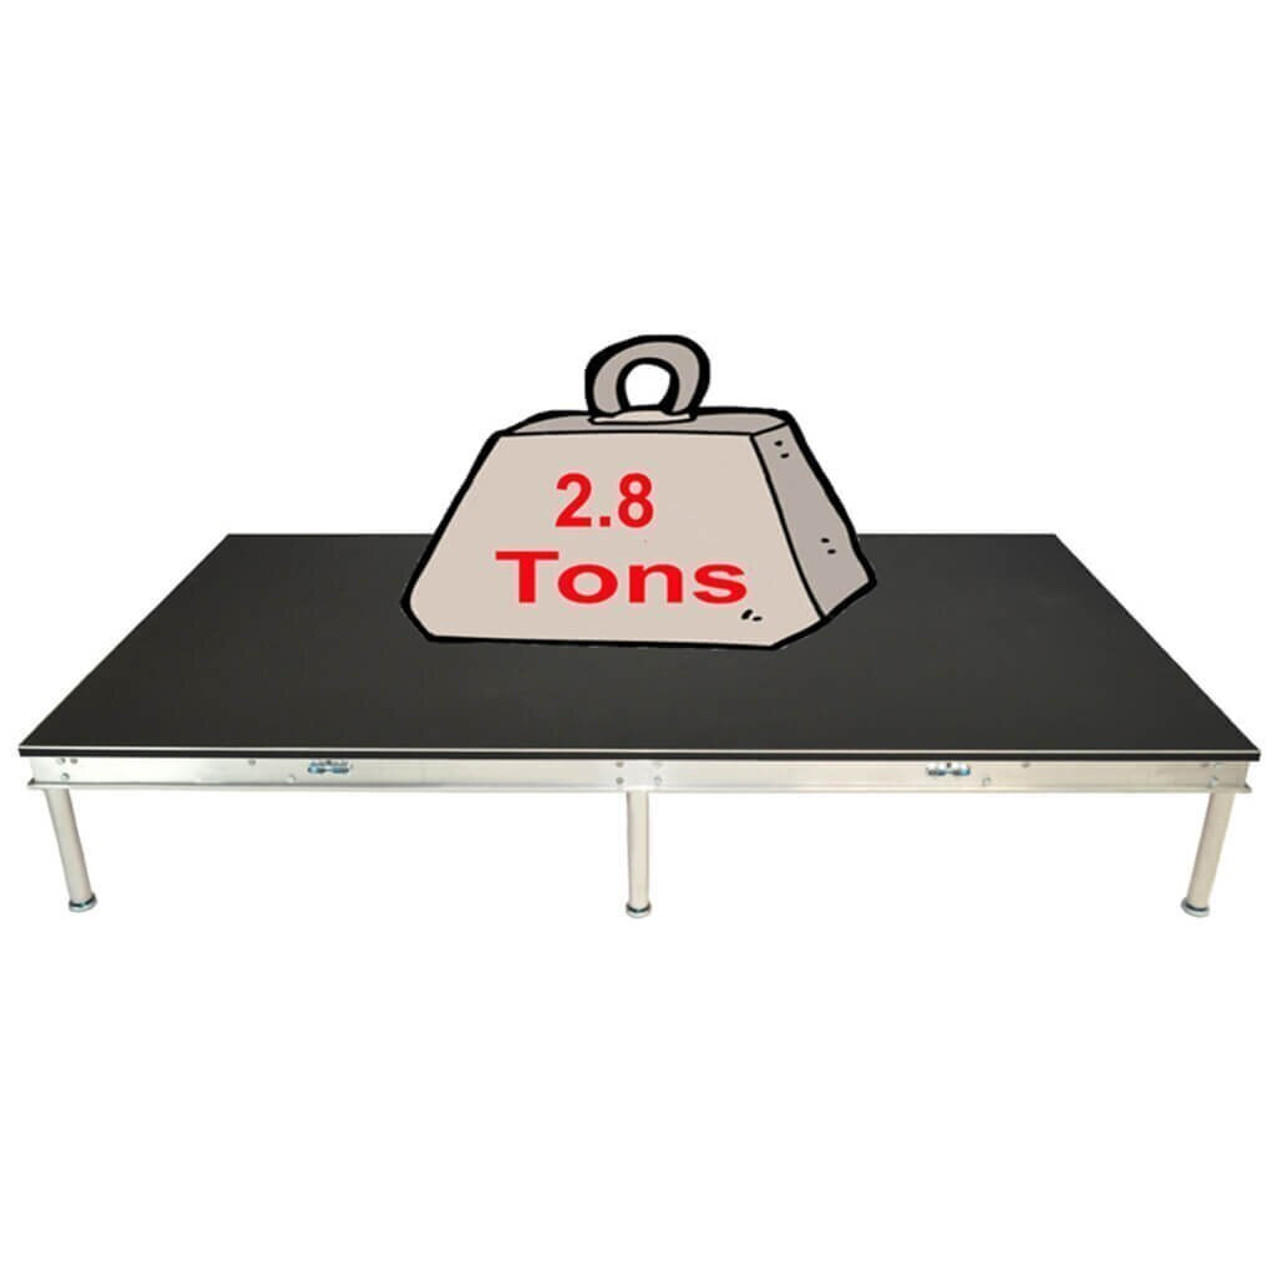 Top rated Quik Stage 4' x 28' High Portable Stage Package with Black Polyvinyl Non-Skid Surface. Additional Heights and Surfaces Available - Holds 2.8 tons per 4 x 8 or 1.4 tons per 4 x 4 when spread out evenly